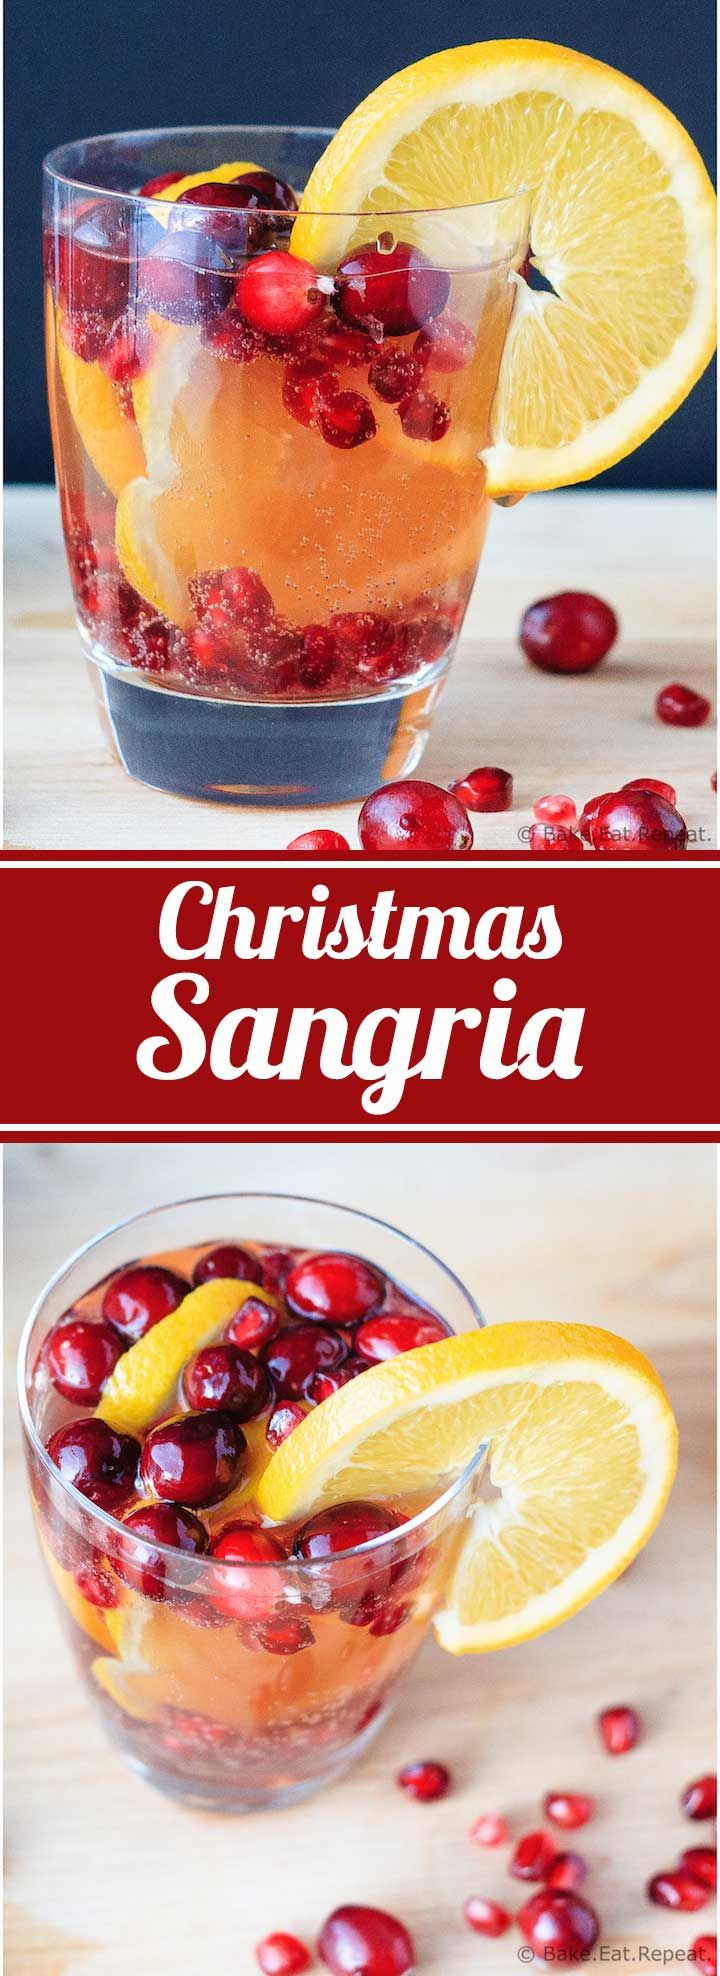 Christmas Drink Recipes  17 Best ideas about Christmas Buffet on Pinterest